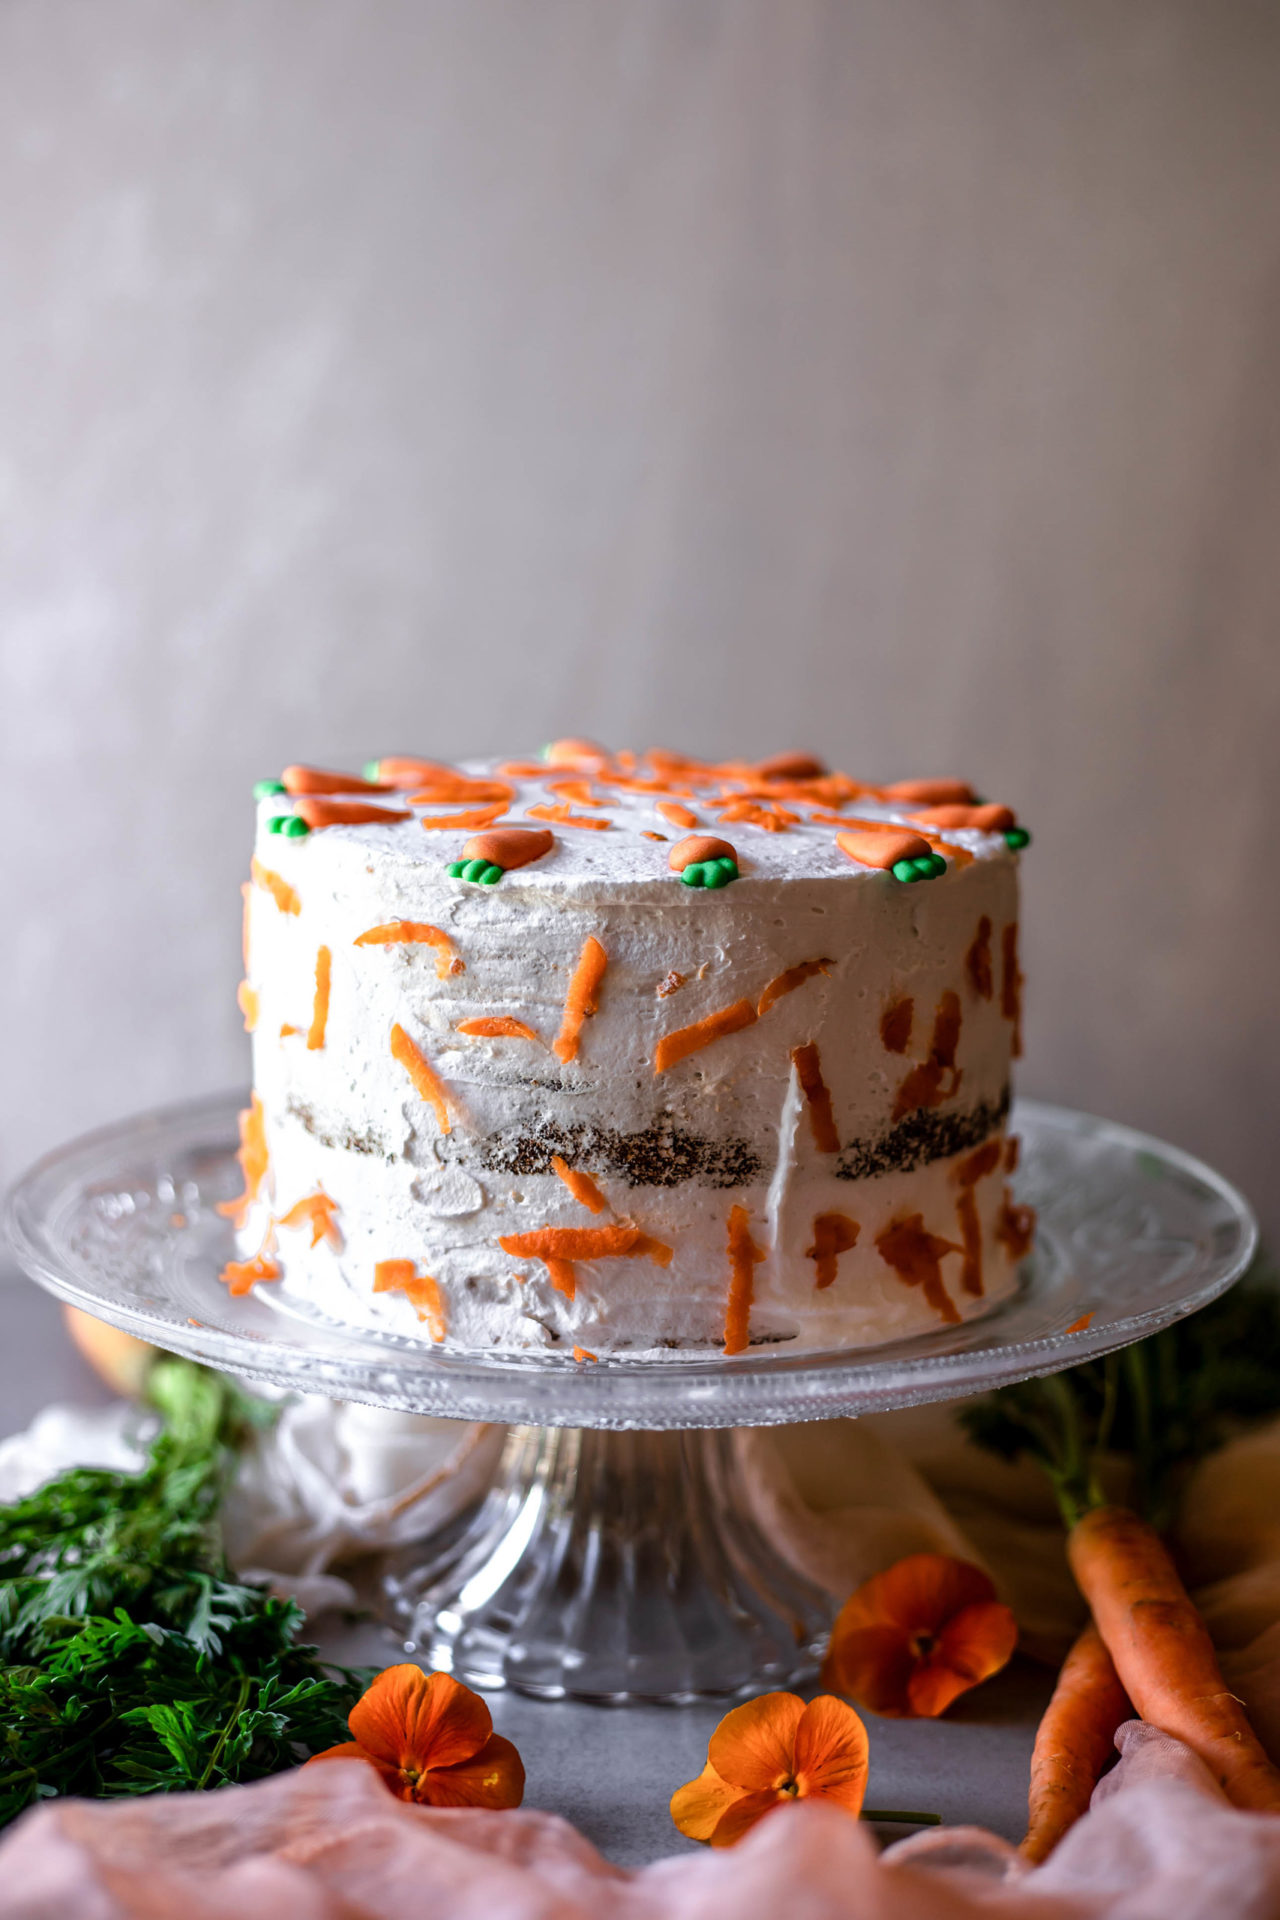 This Low FODMAP Carrot Cake is perfectly sweetened, flavorful, super tender and fluffy, moist, carrot packed and so delicious!